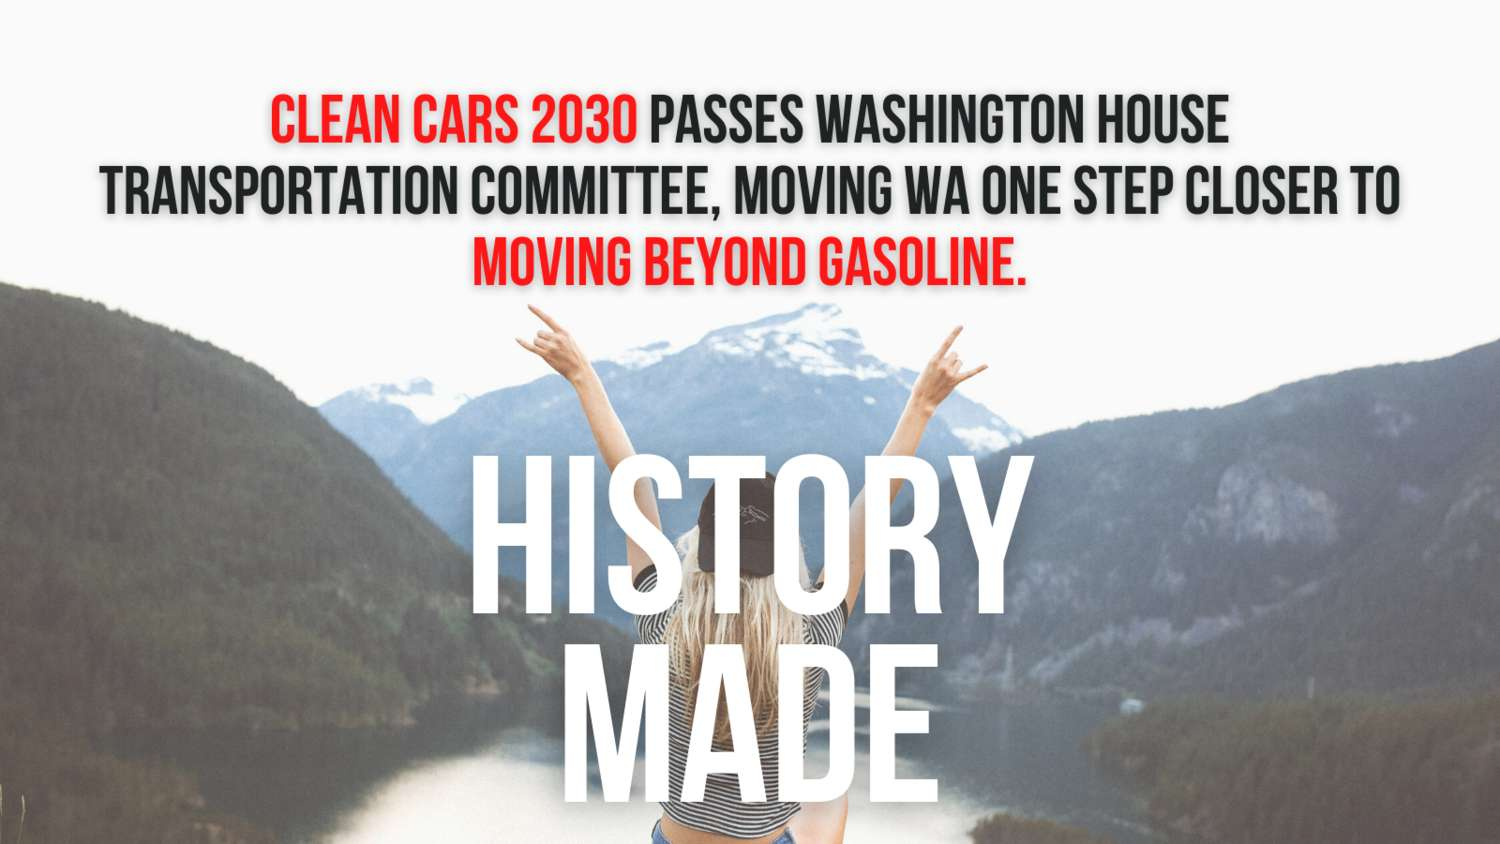 History Made! Clean Cars 2030 passes WA House Transportation Committee.